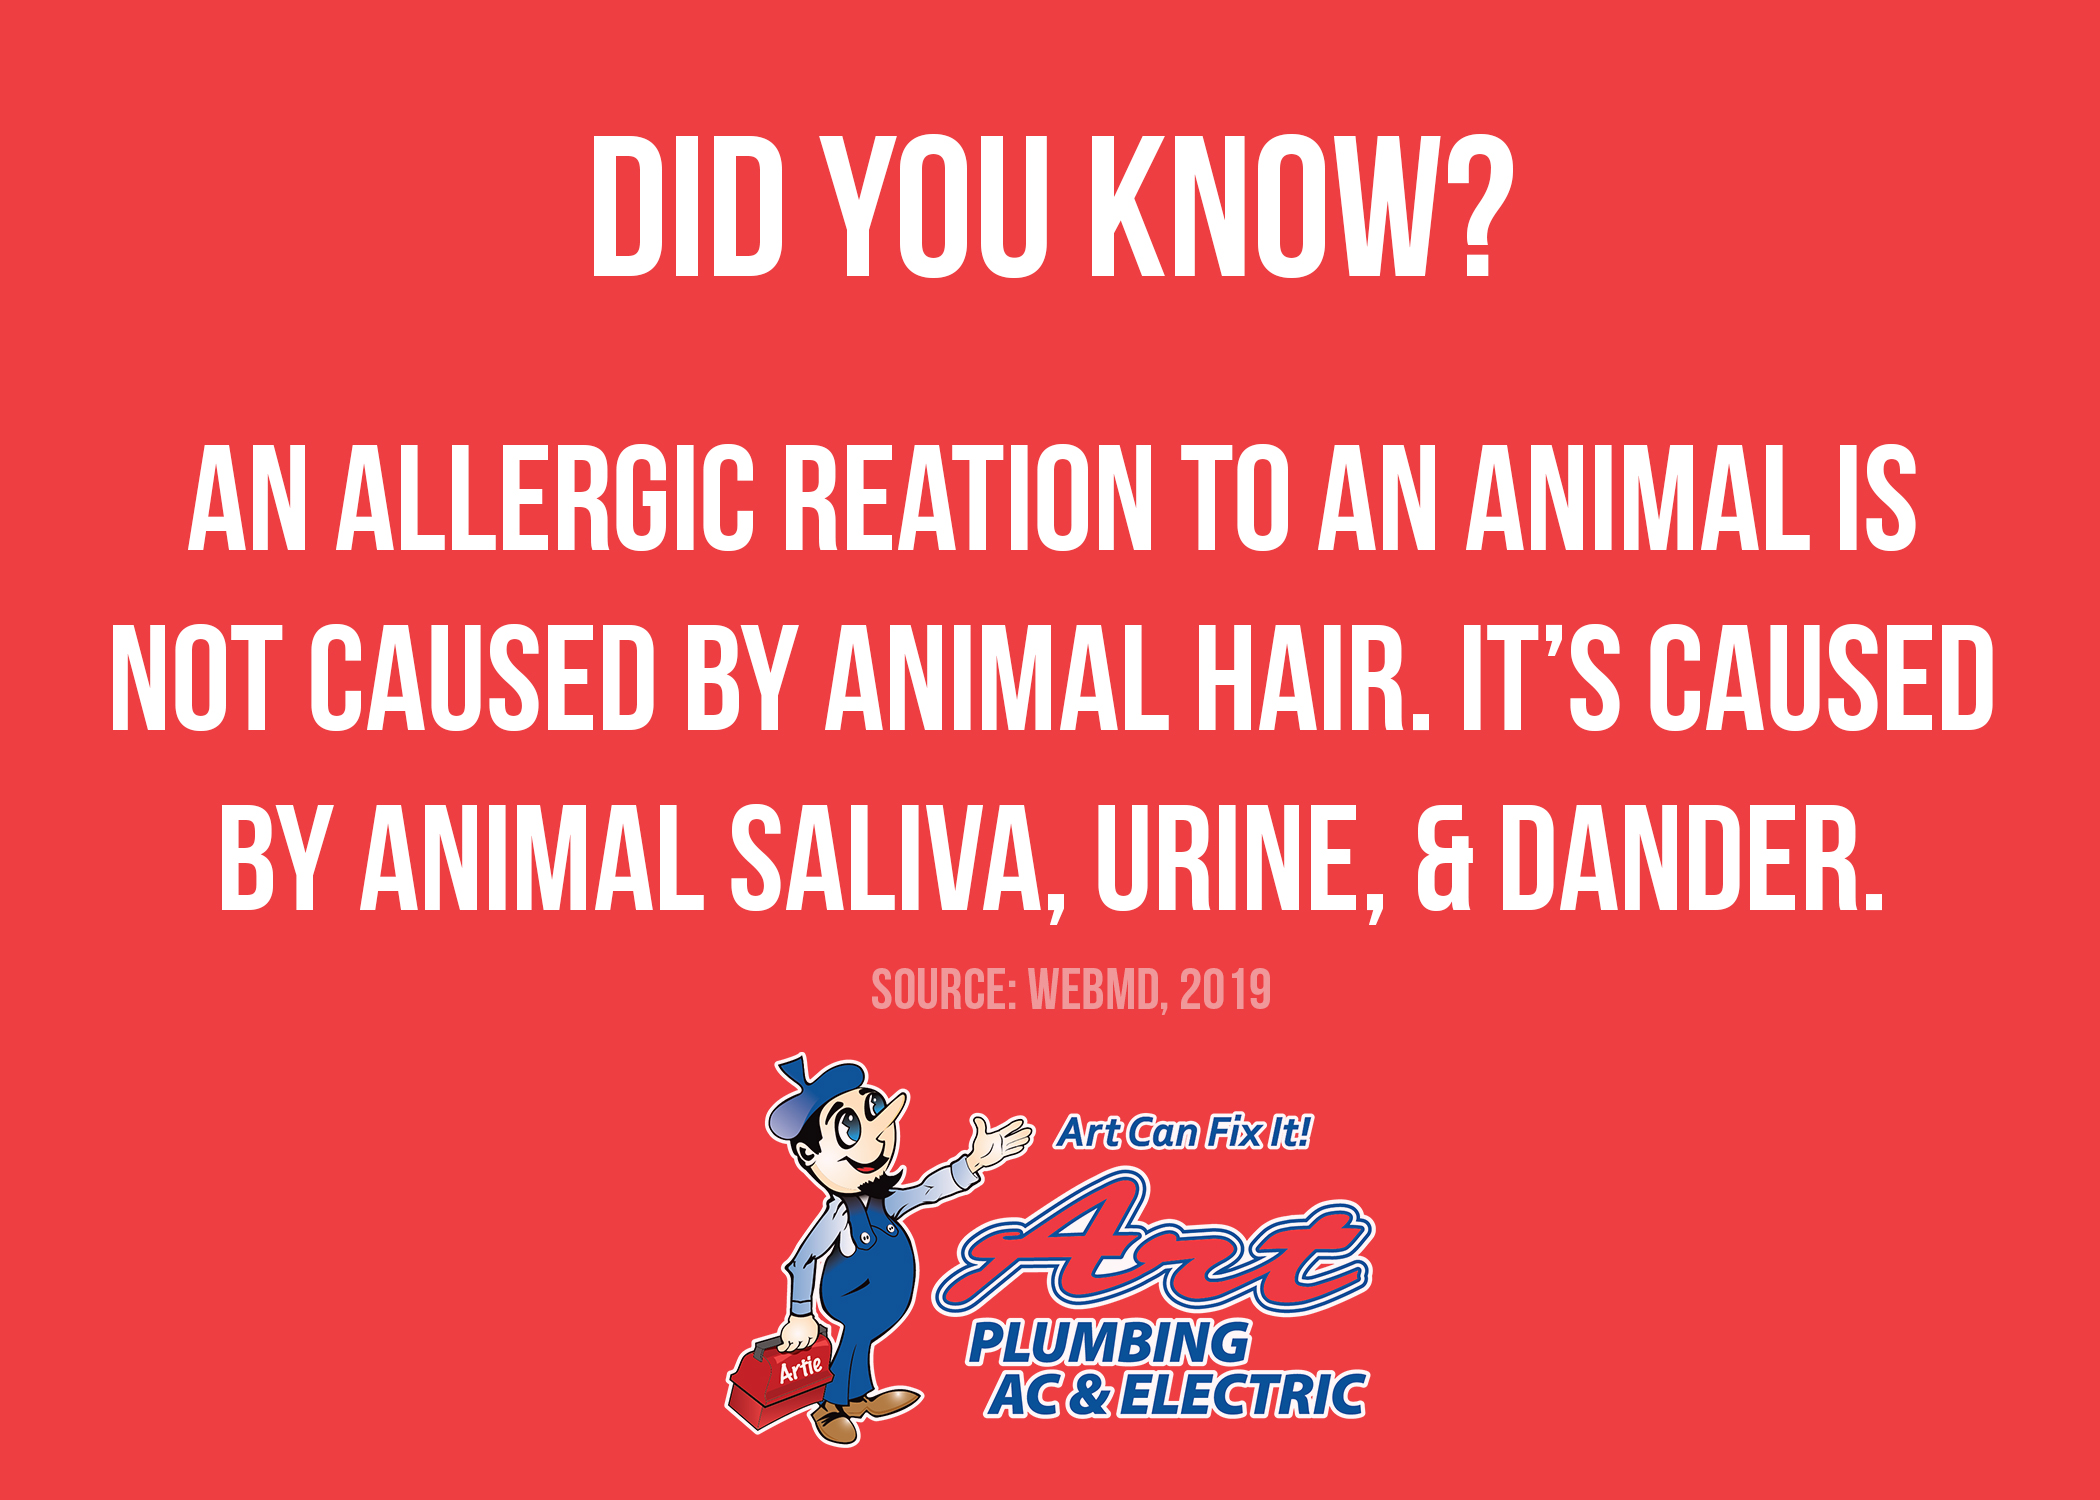 Did You Know An Allergic Reaction To An Animal Isn't Caused By Animal Hair?